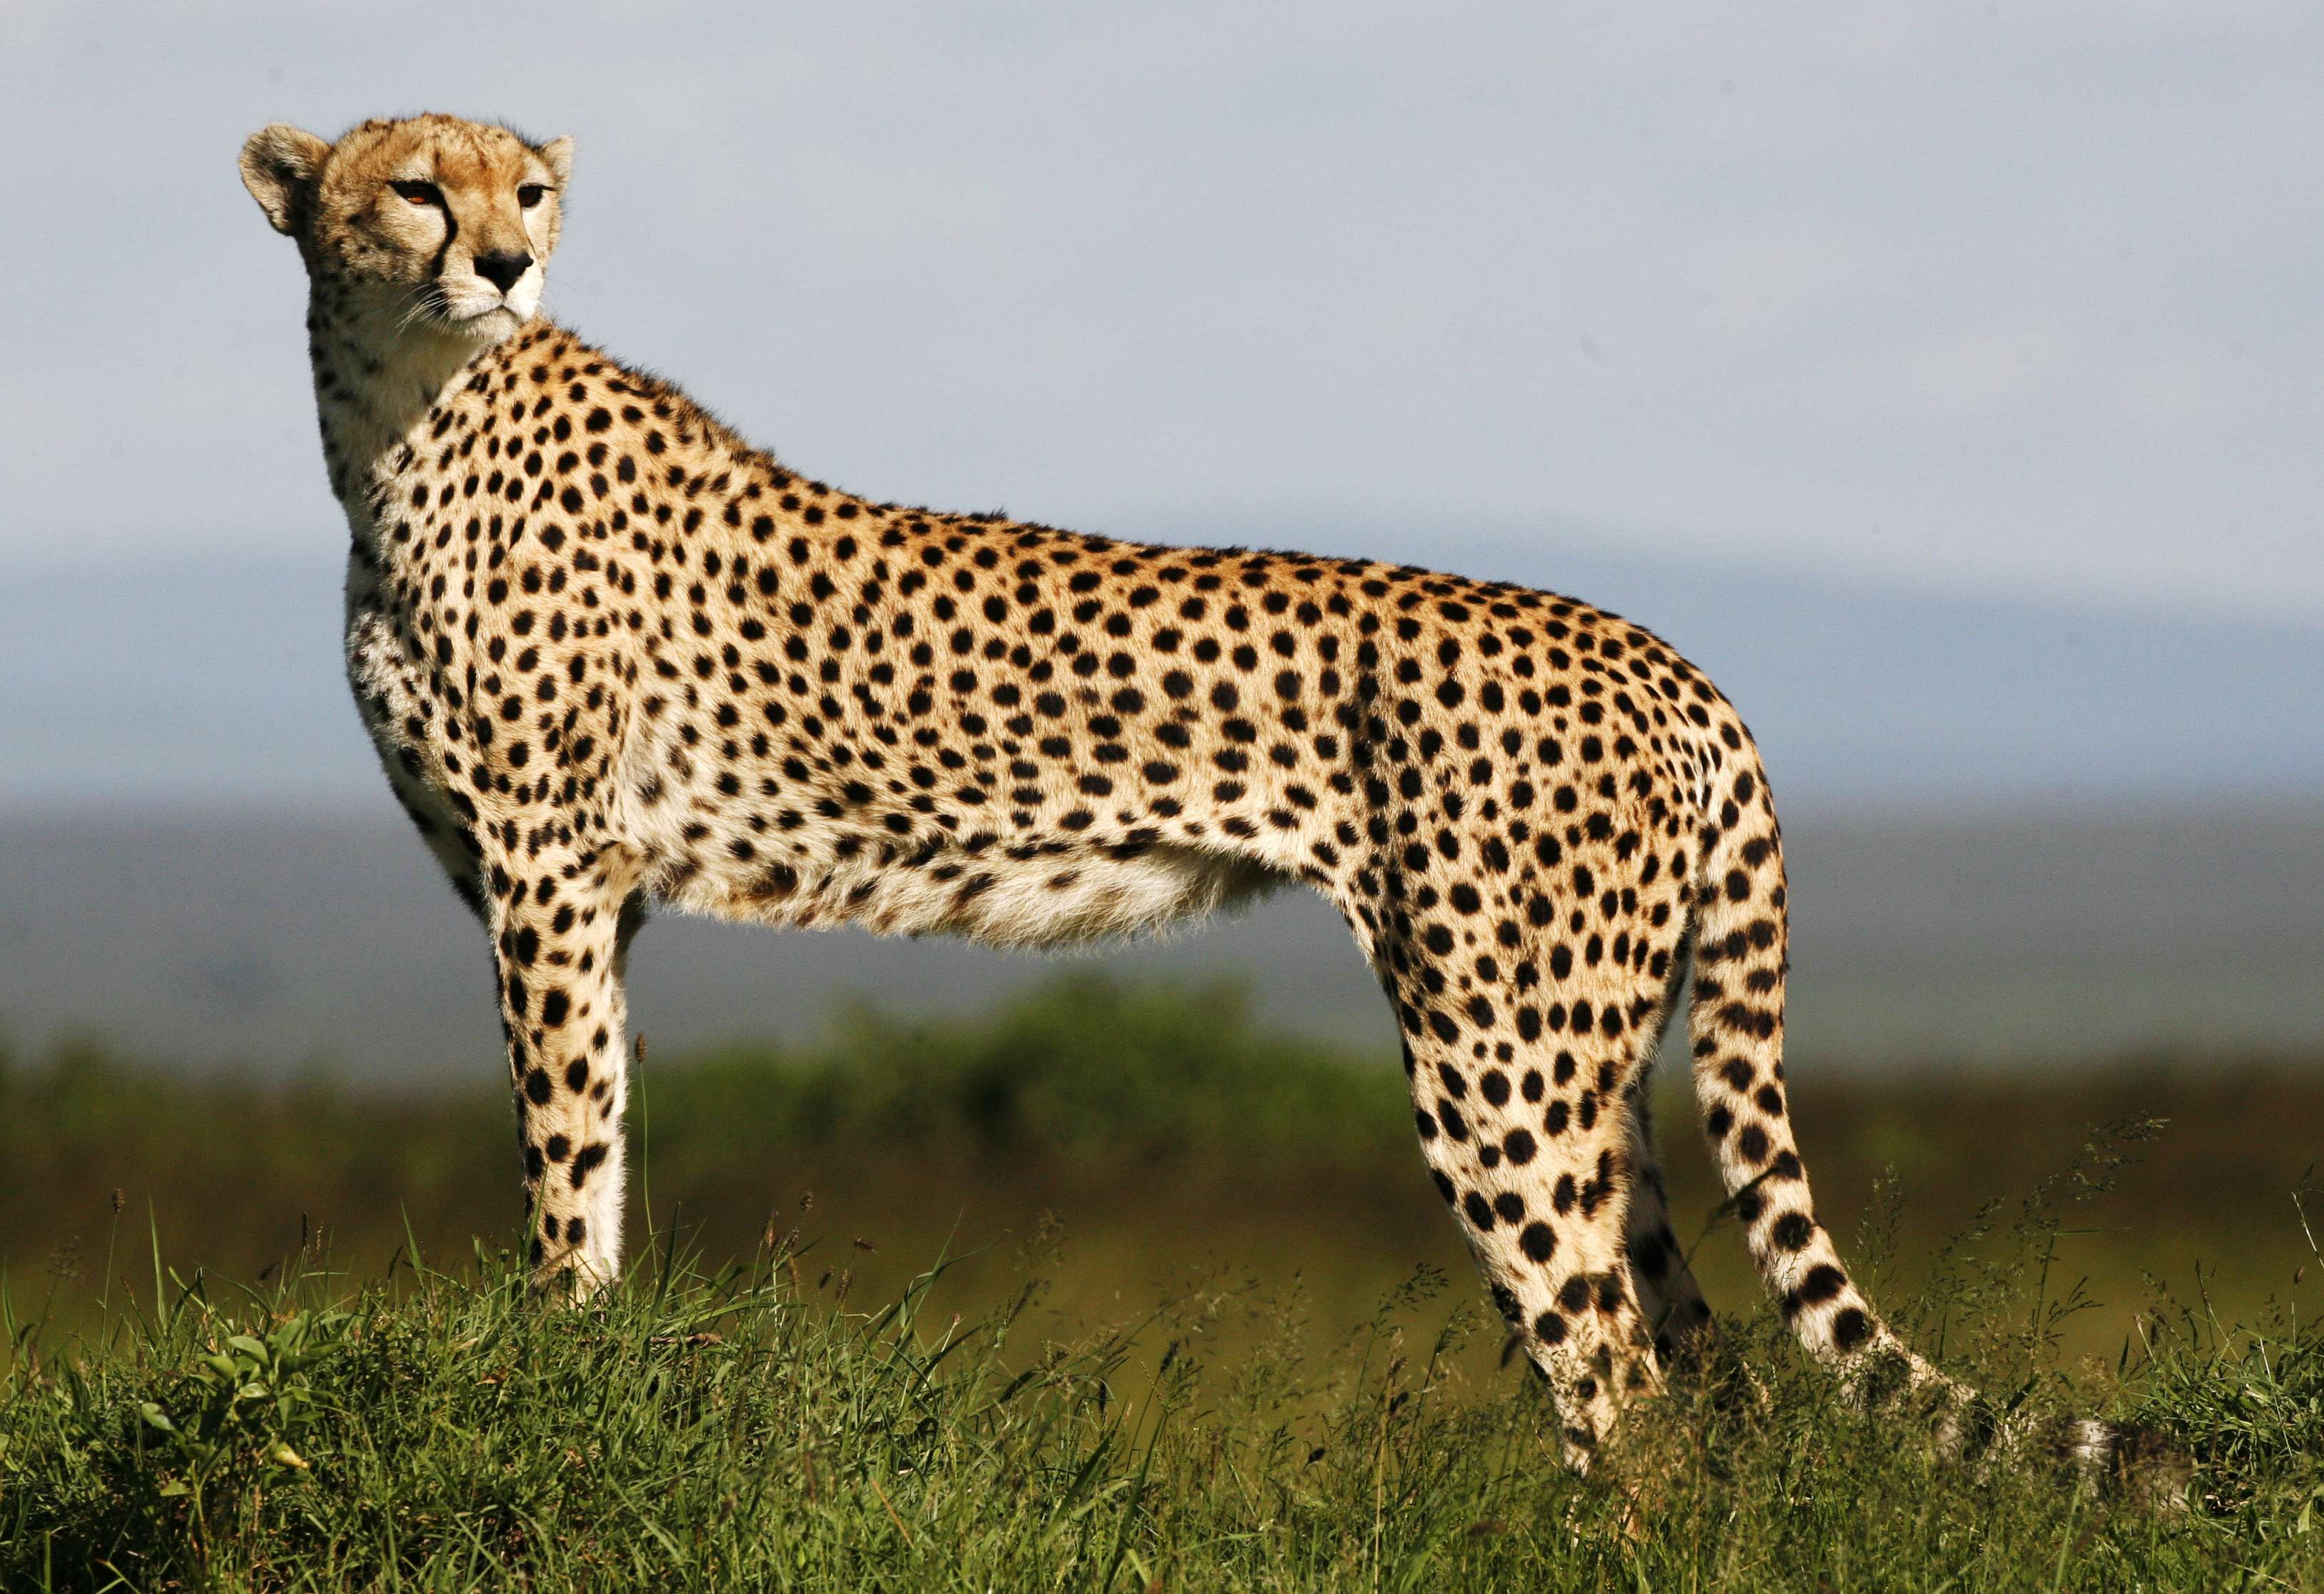 an analysis of the many endangered species in the world and the cheetah as one of them Studies of cheetah chromosomes have shown a surprising lack of genetic diversity from one individual to the next, and as a result the cheetah has been widely portrayed as sitting under an.